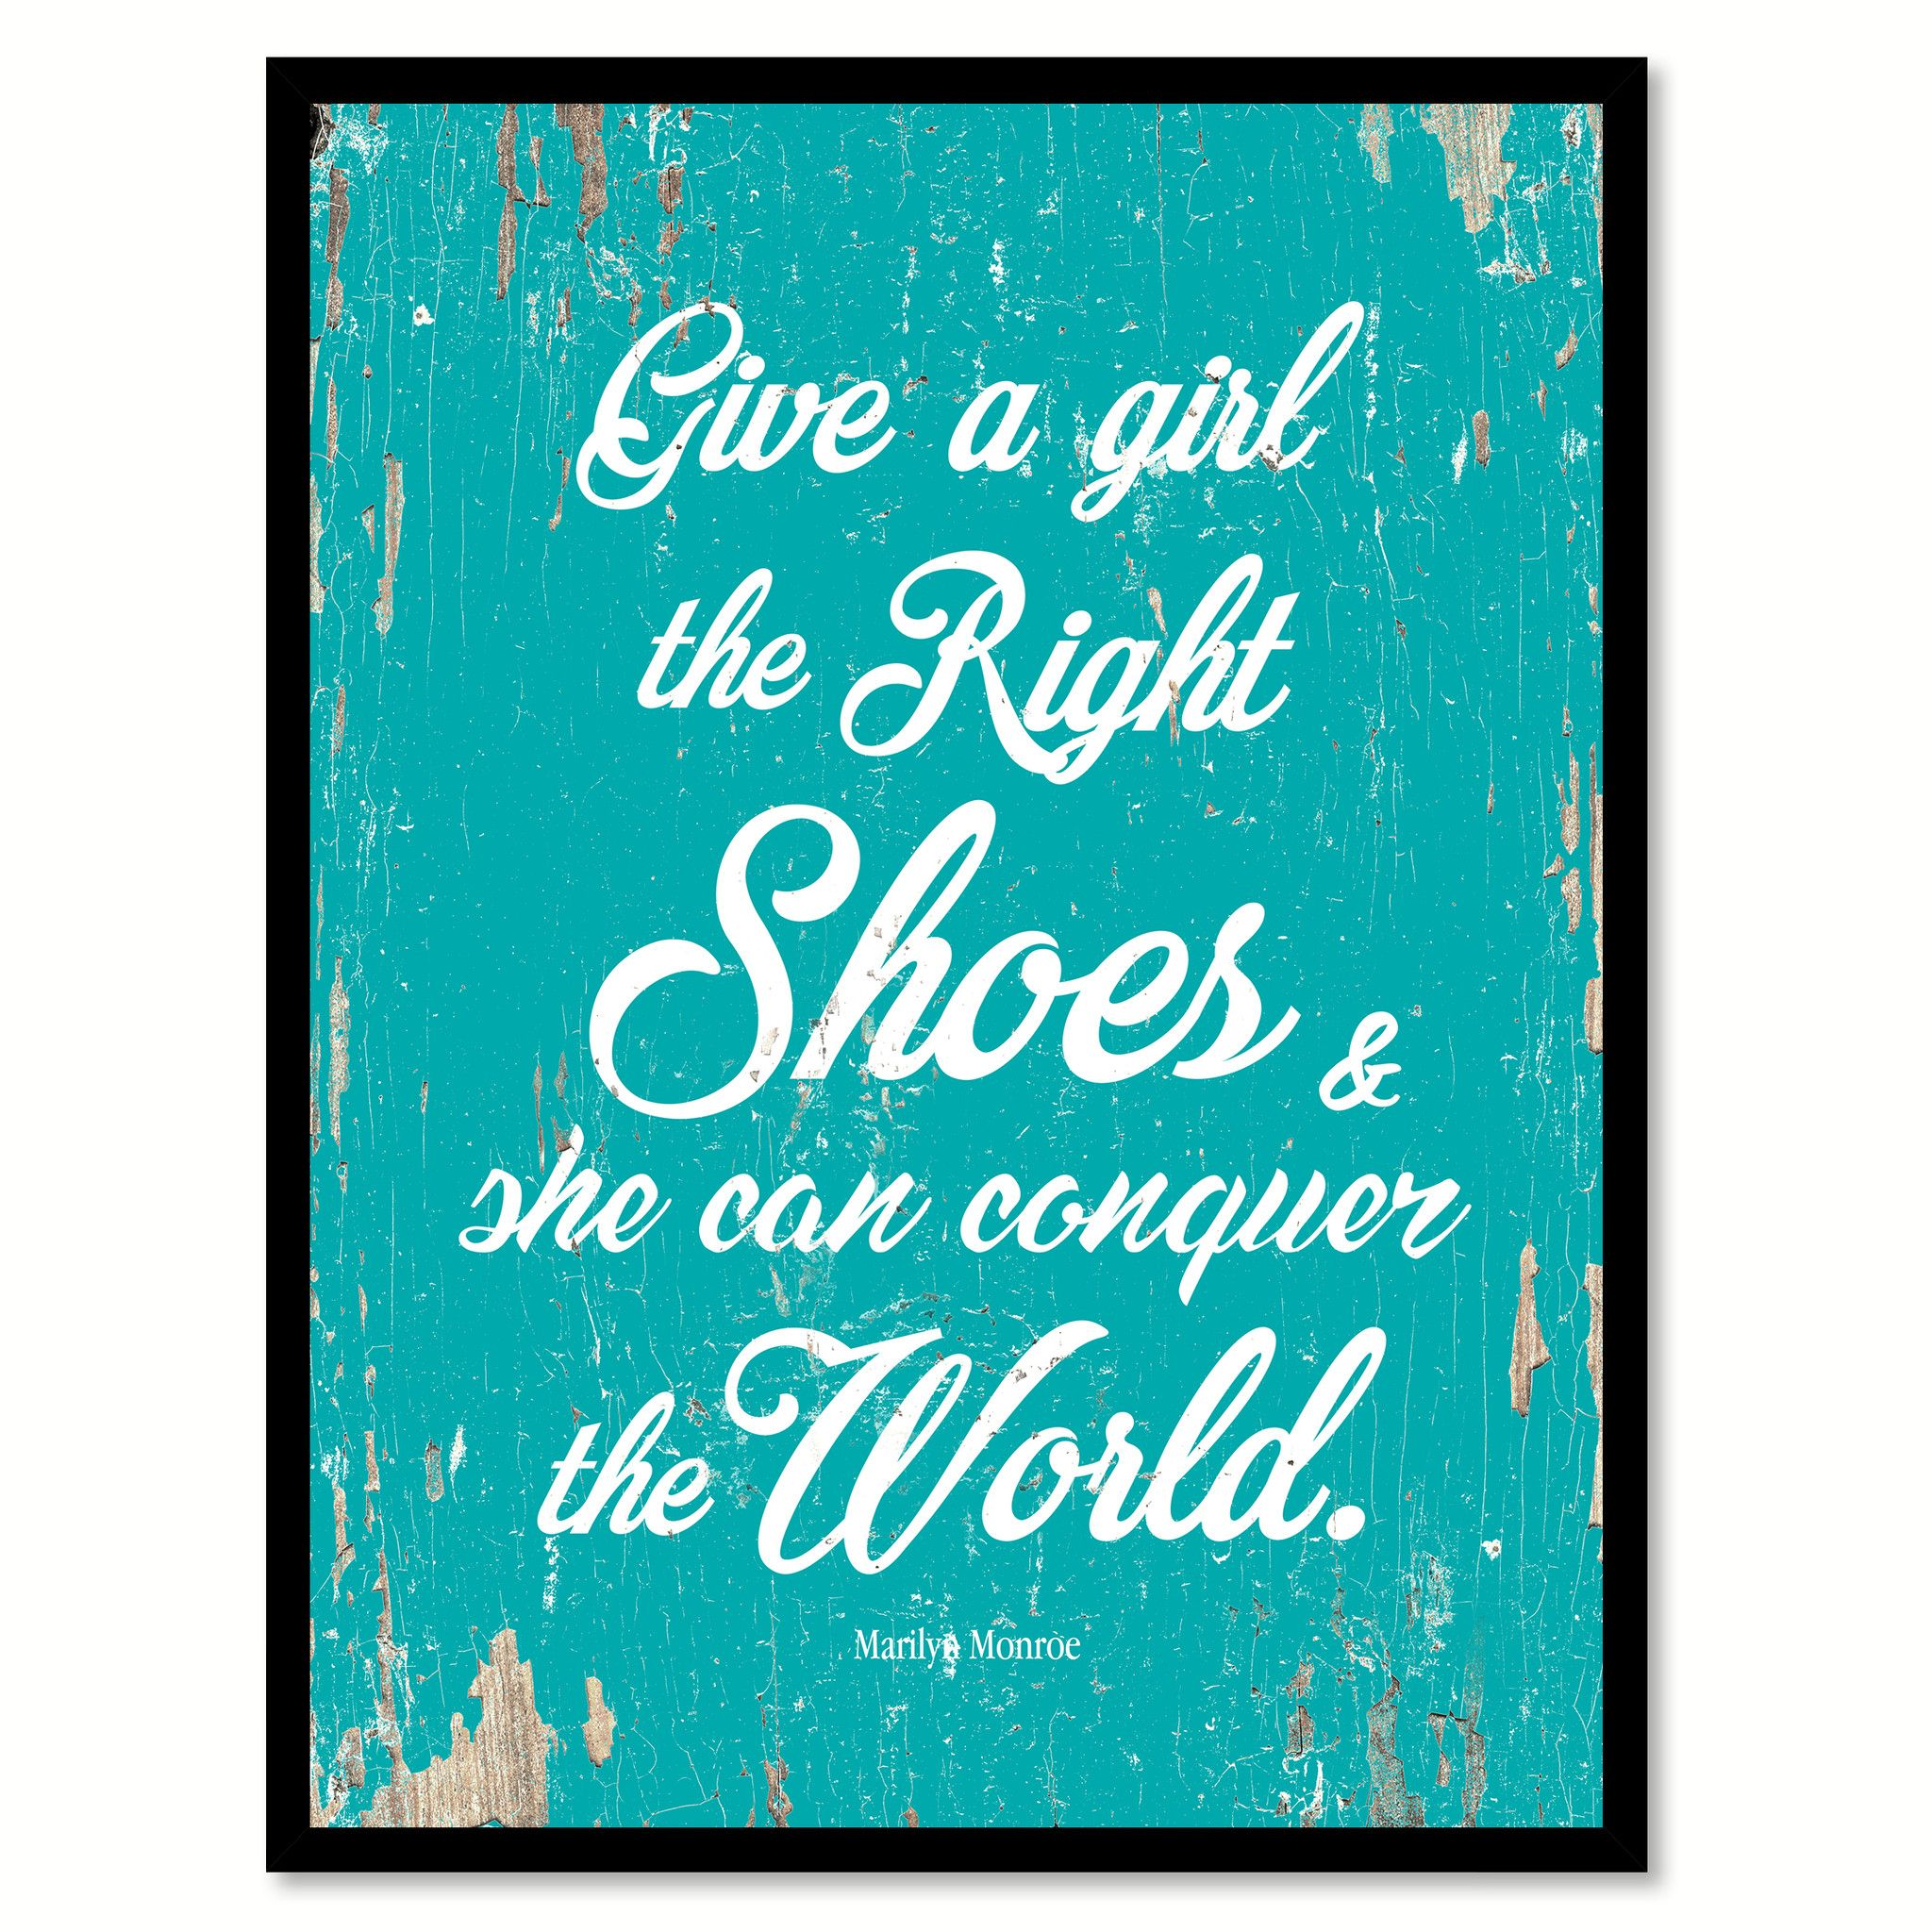 Give A Girl The Right Shoes Marilyn Monroe Inspirational Quote